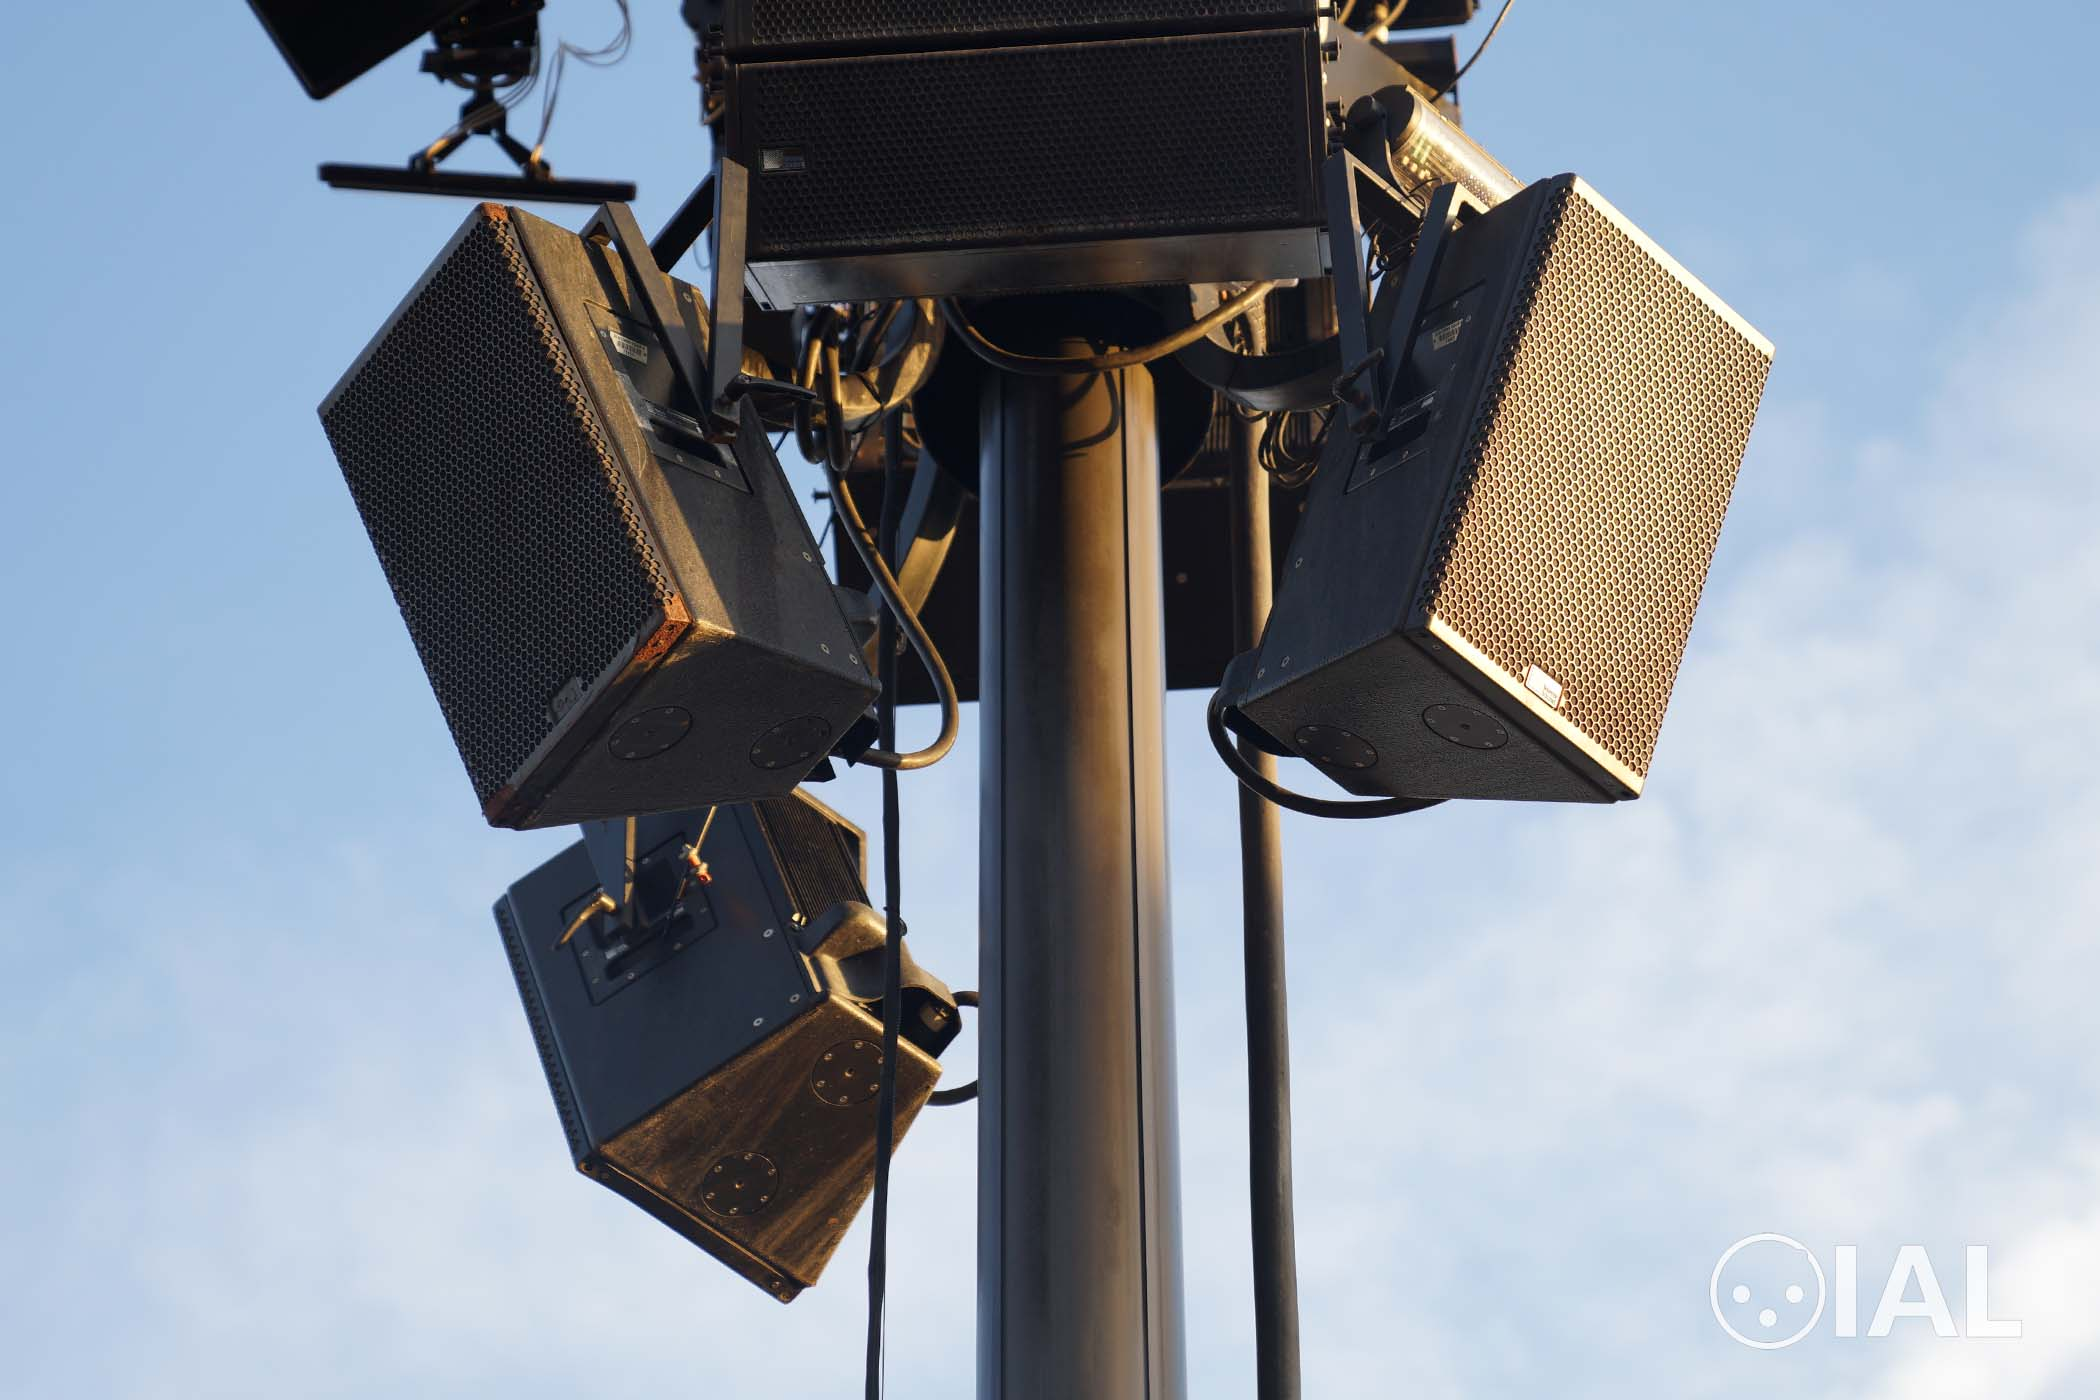 Pictured are three Meyer Sound UPA-1Ps mounted on a telescoping mast for World of Color.